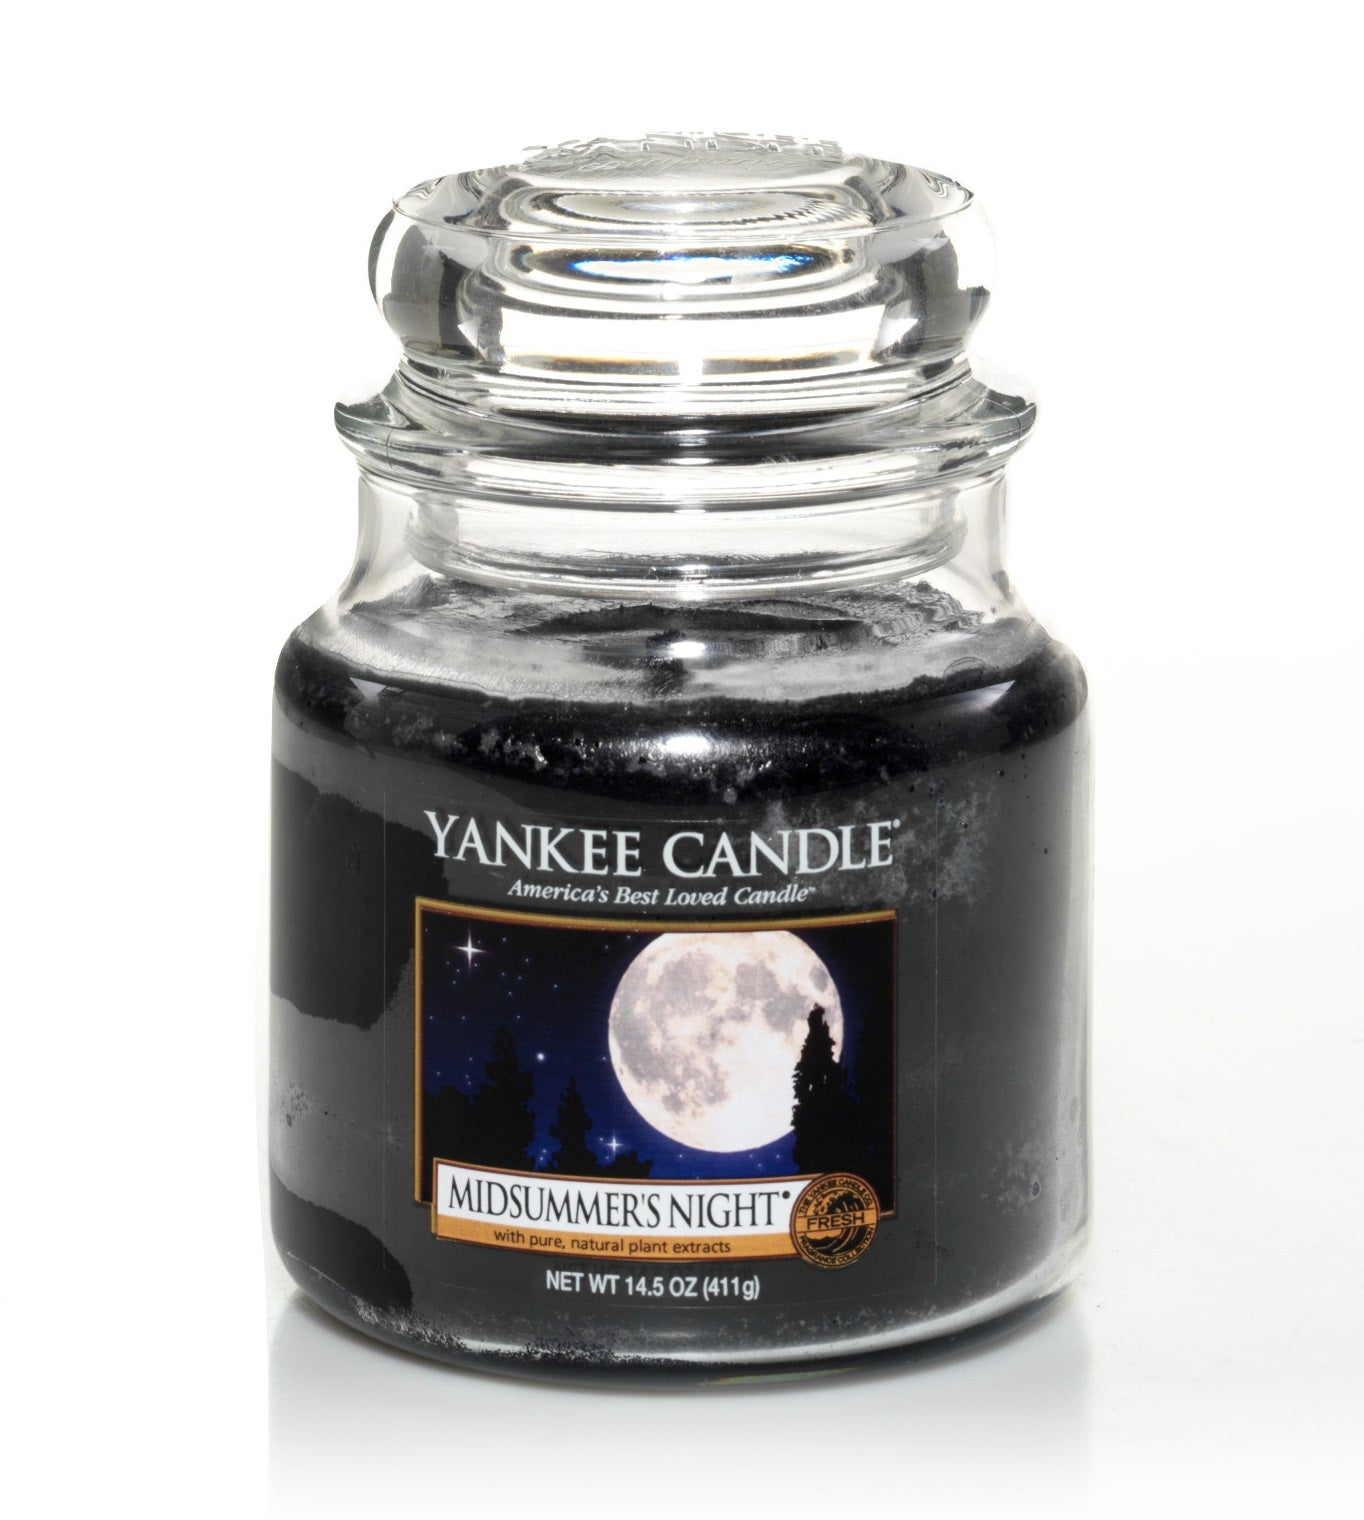 MIDSUMMER'S NIGHT -Yankee Candle- Giara Media